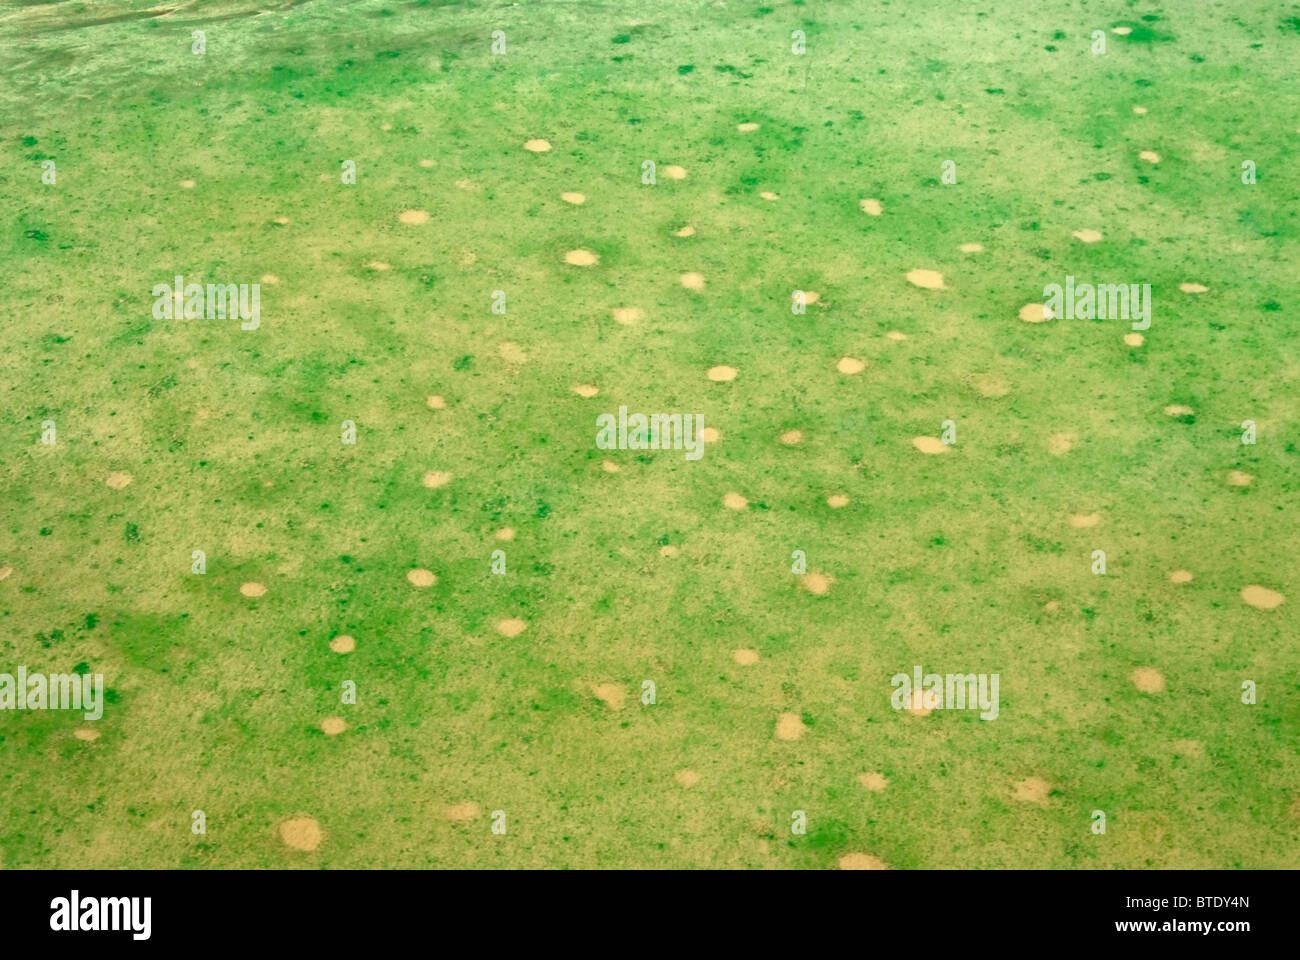 Aerial scenic view of fairy circles and green flush from recent rains - Stock Image